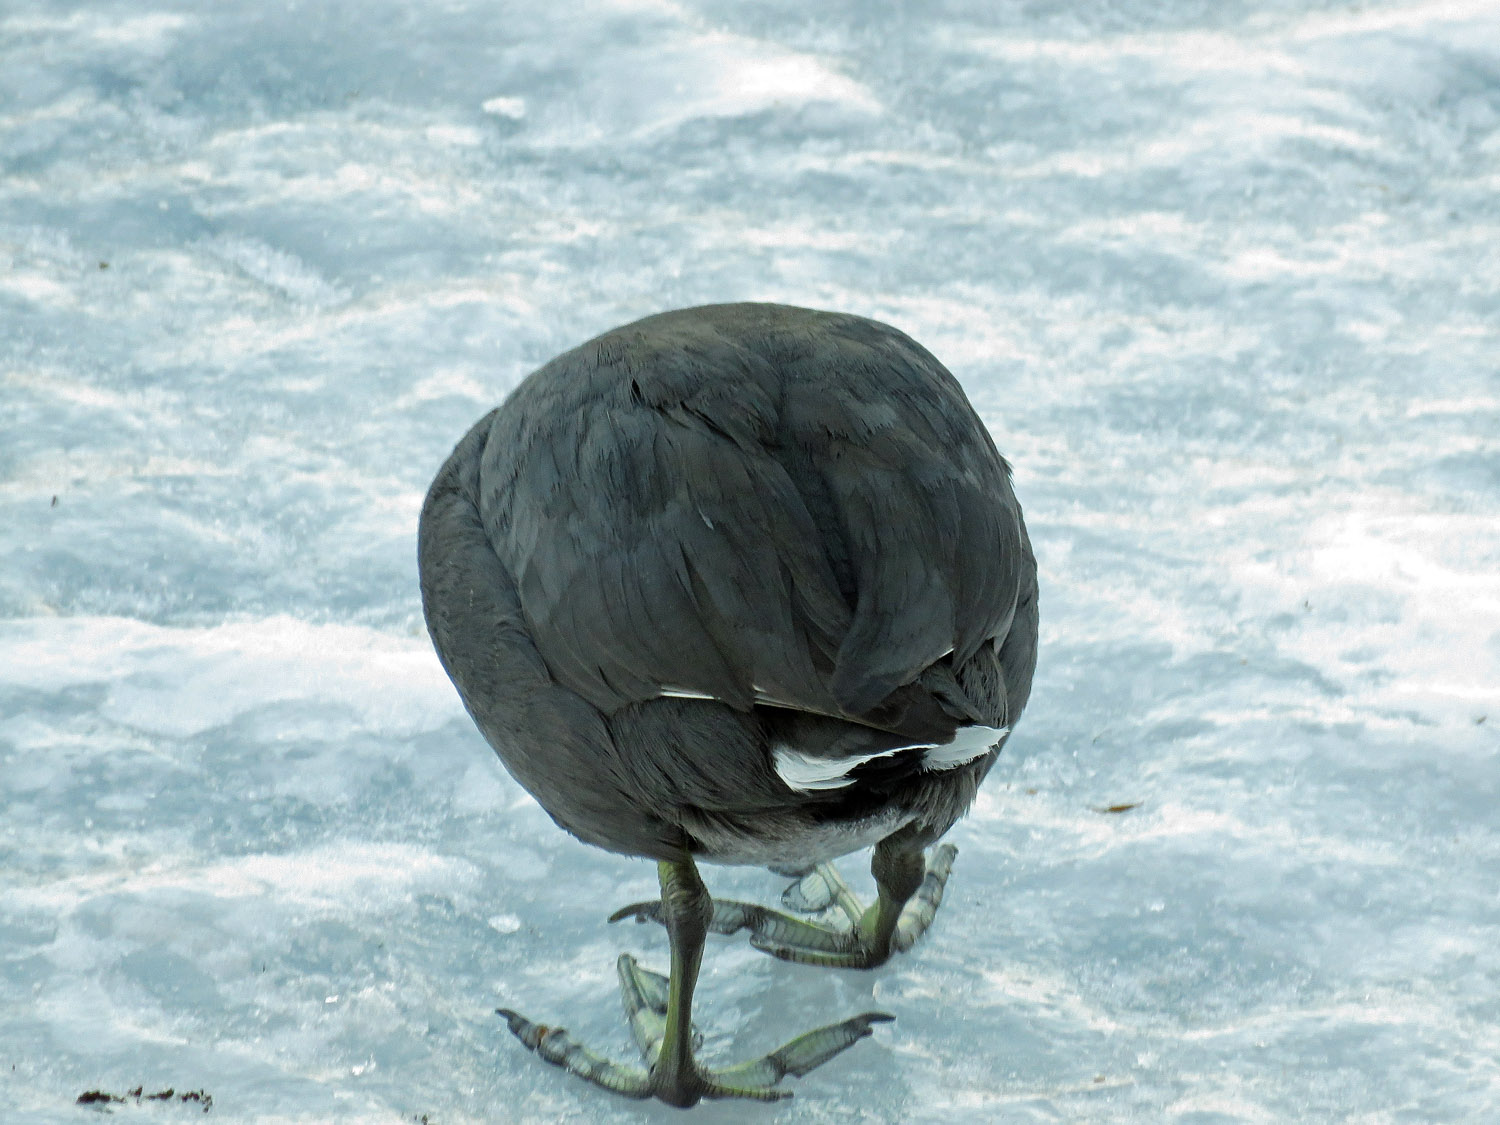 A coot's behind, showing those strange feet